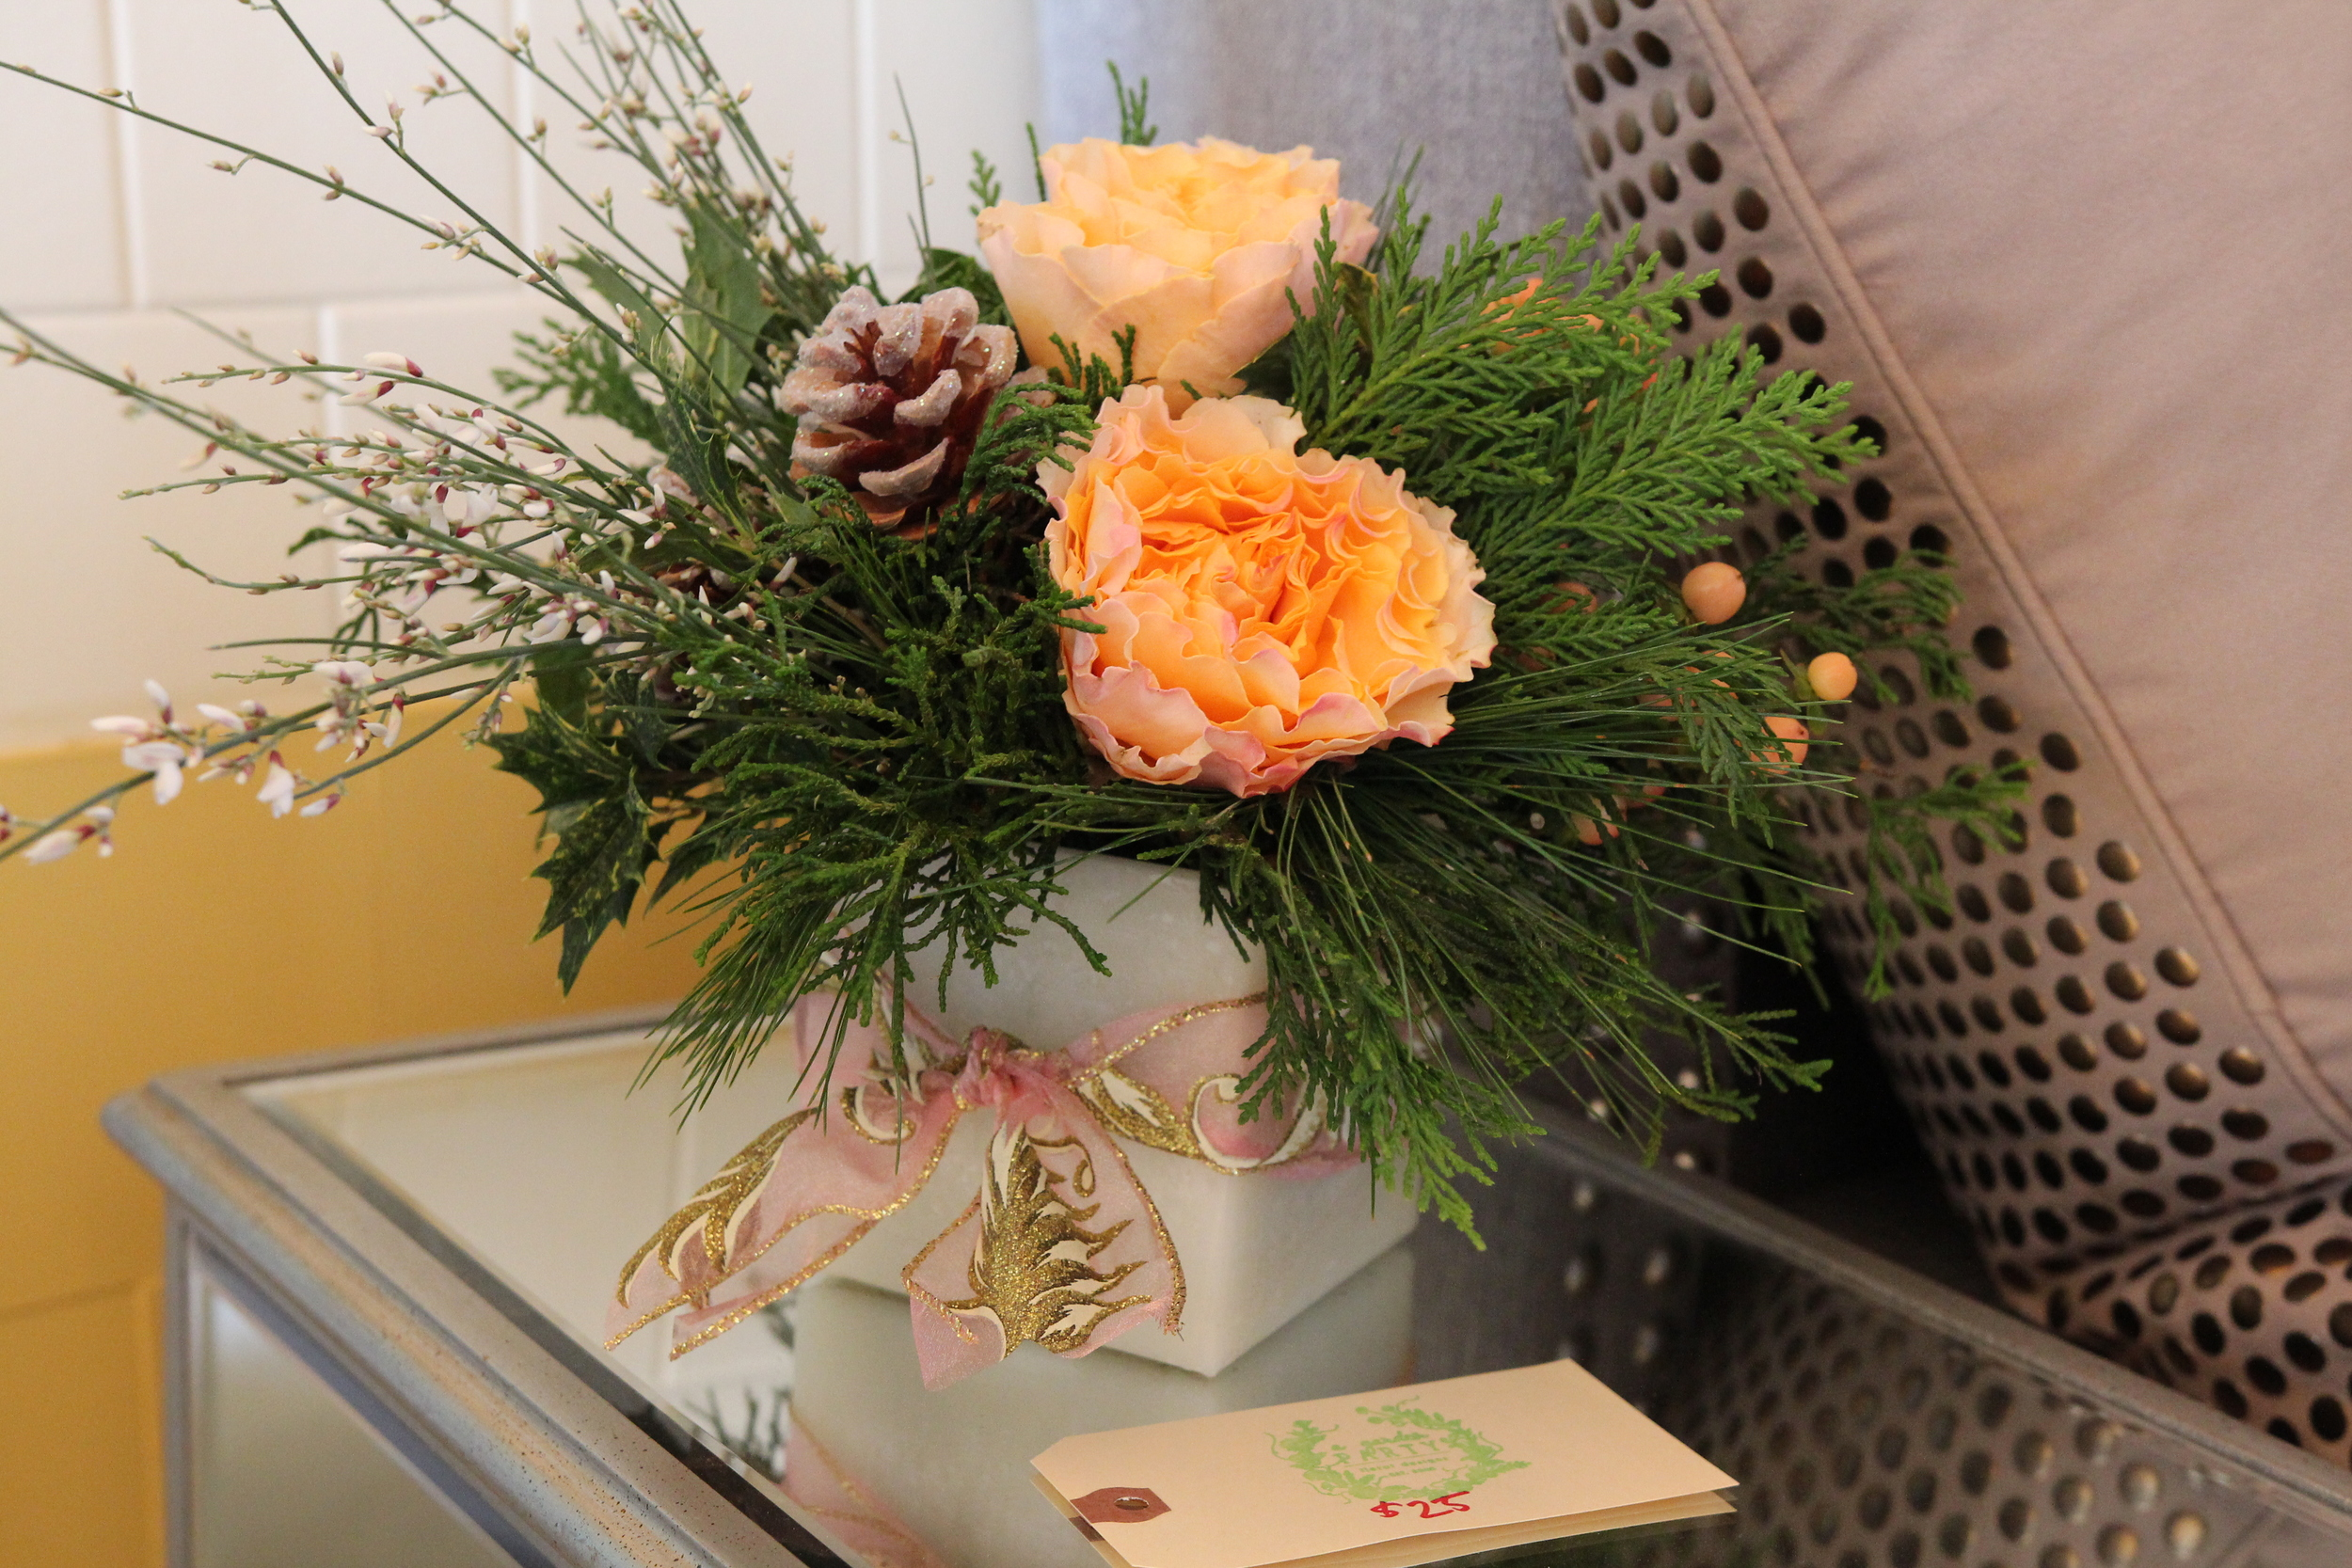 A Garden Party, A Milkhouse Party, Holiday Open House, Christmas Centerpiece Workshop, Floral Design Workshop